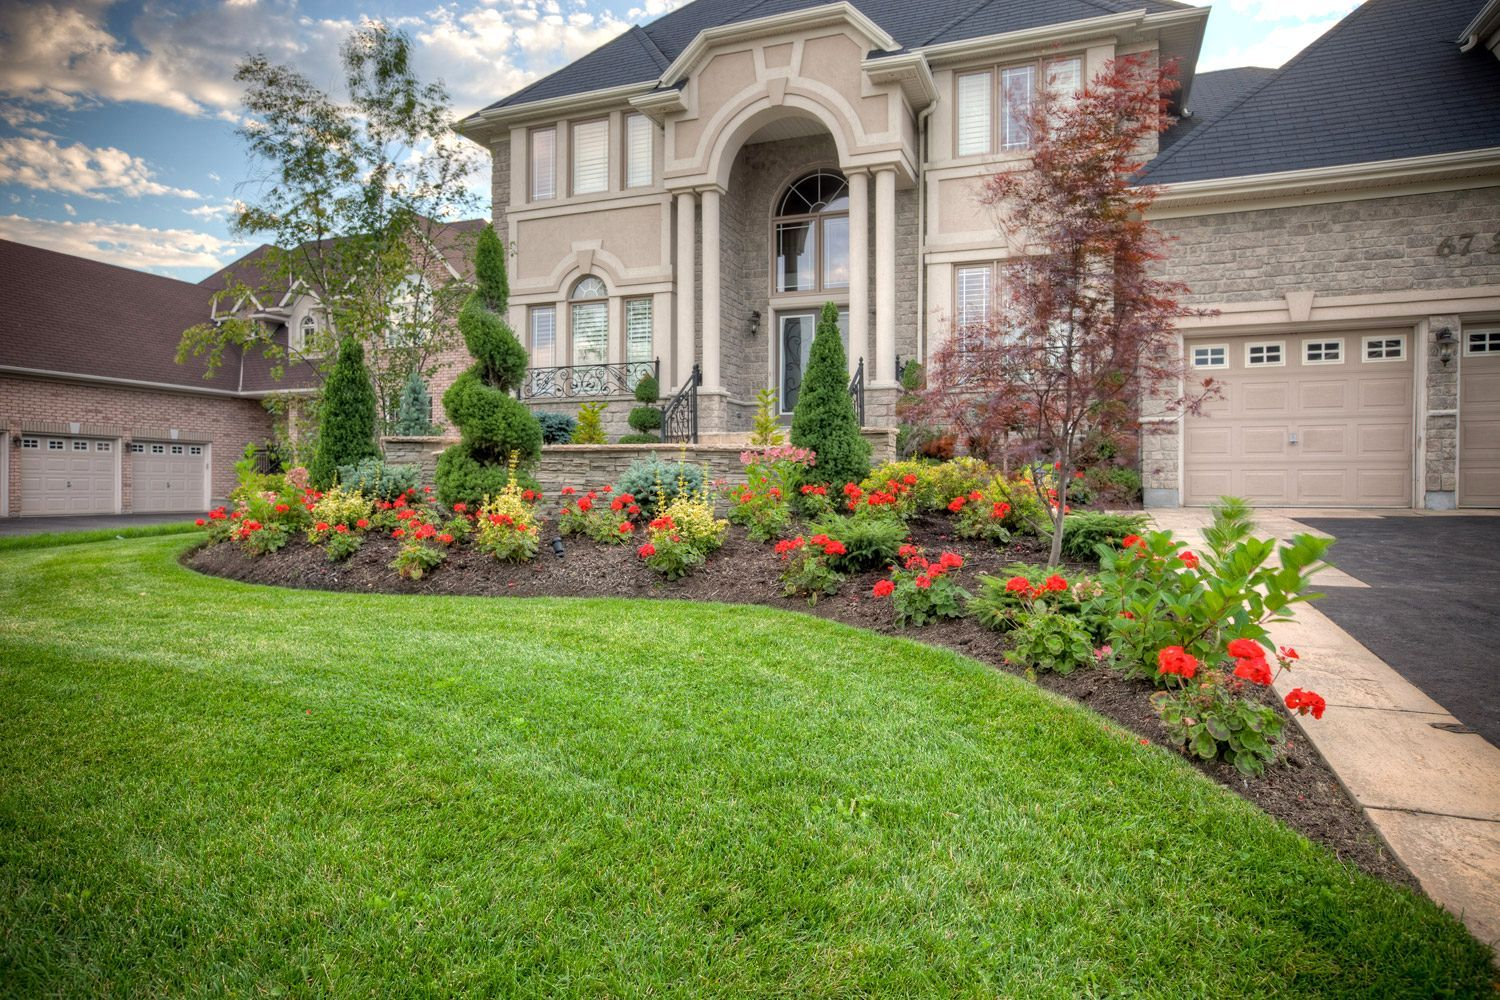 Awesome Landscape Design Front Of Colonial House Part - 11: Colonial-front-house-garden-design-the-garden-inspirations-